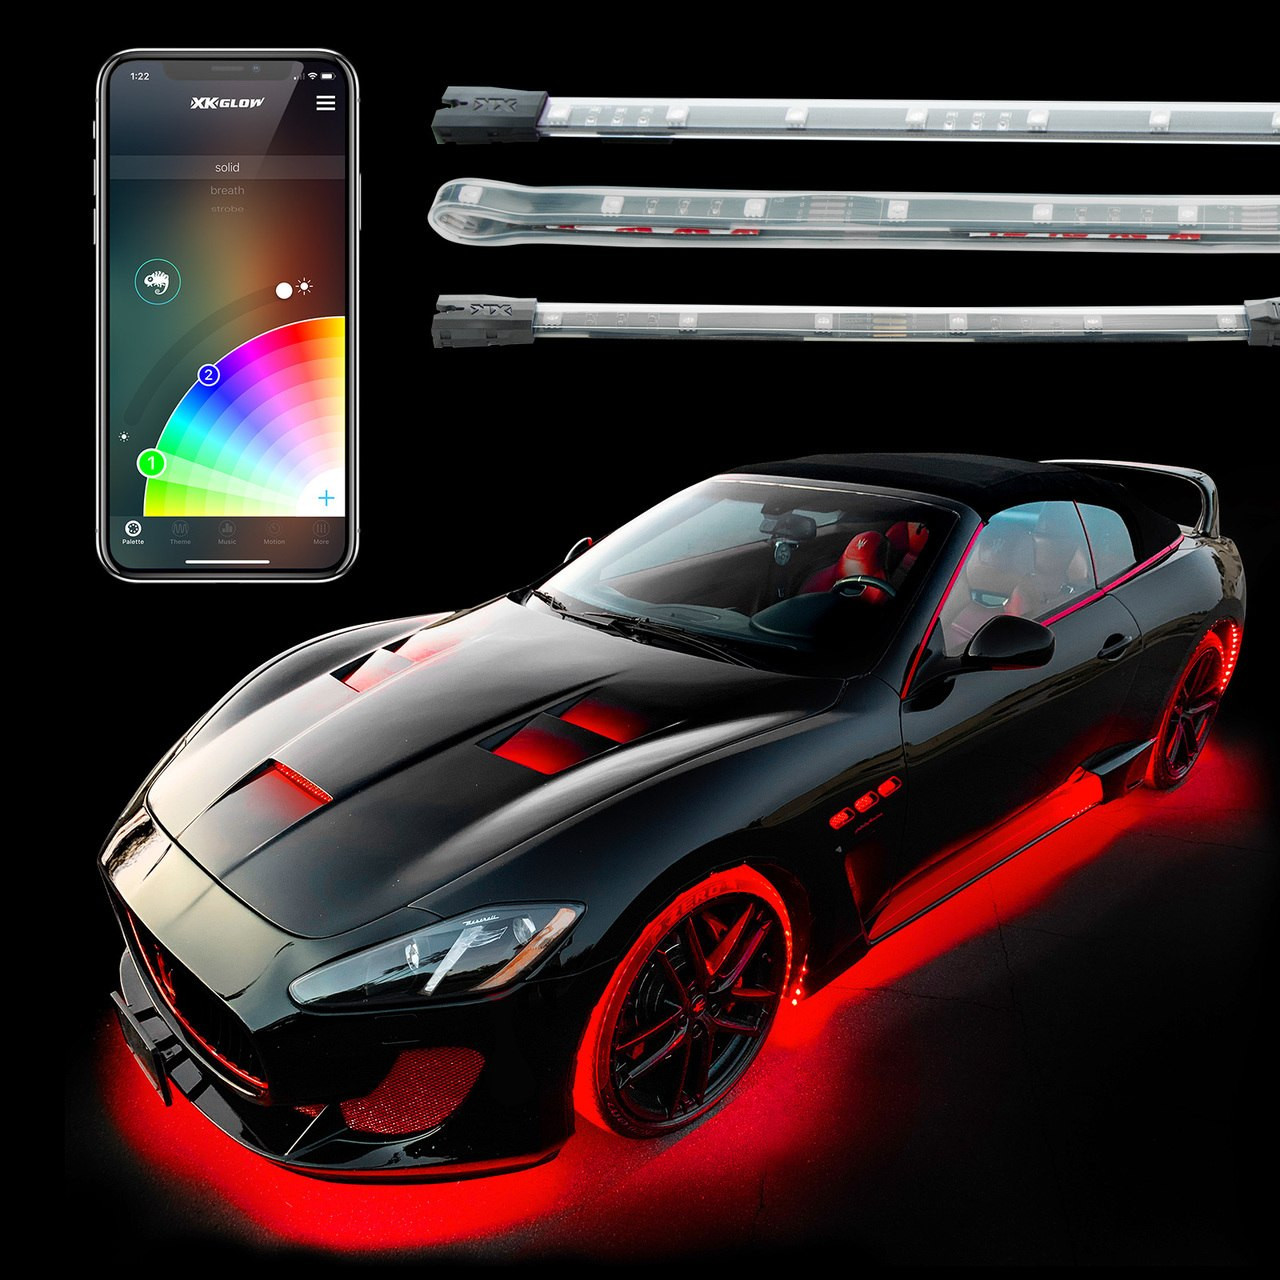 Led Lights For Cars >> Underglow Interior Led Accent Light Kits For Cars Xkchrome Smartphone App